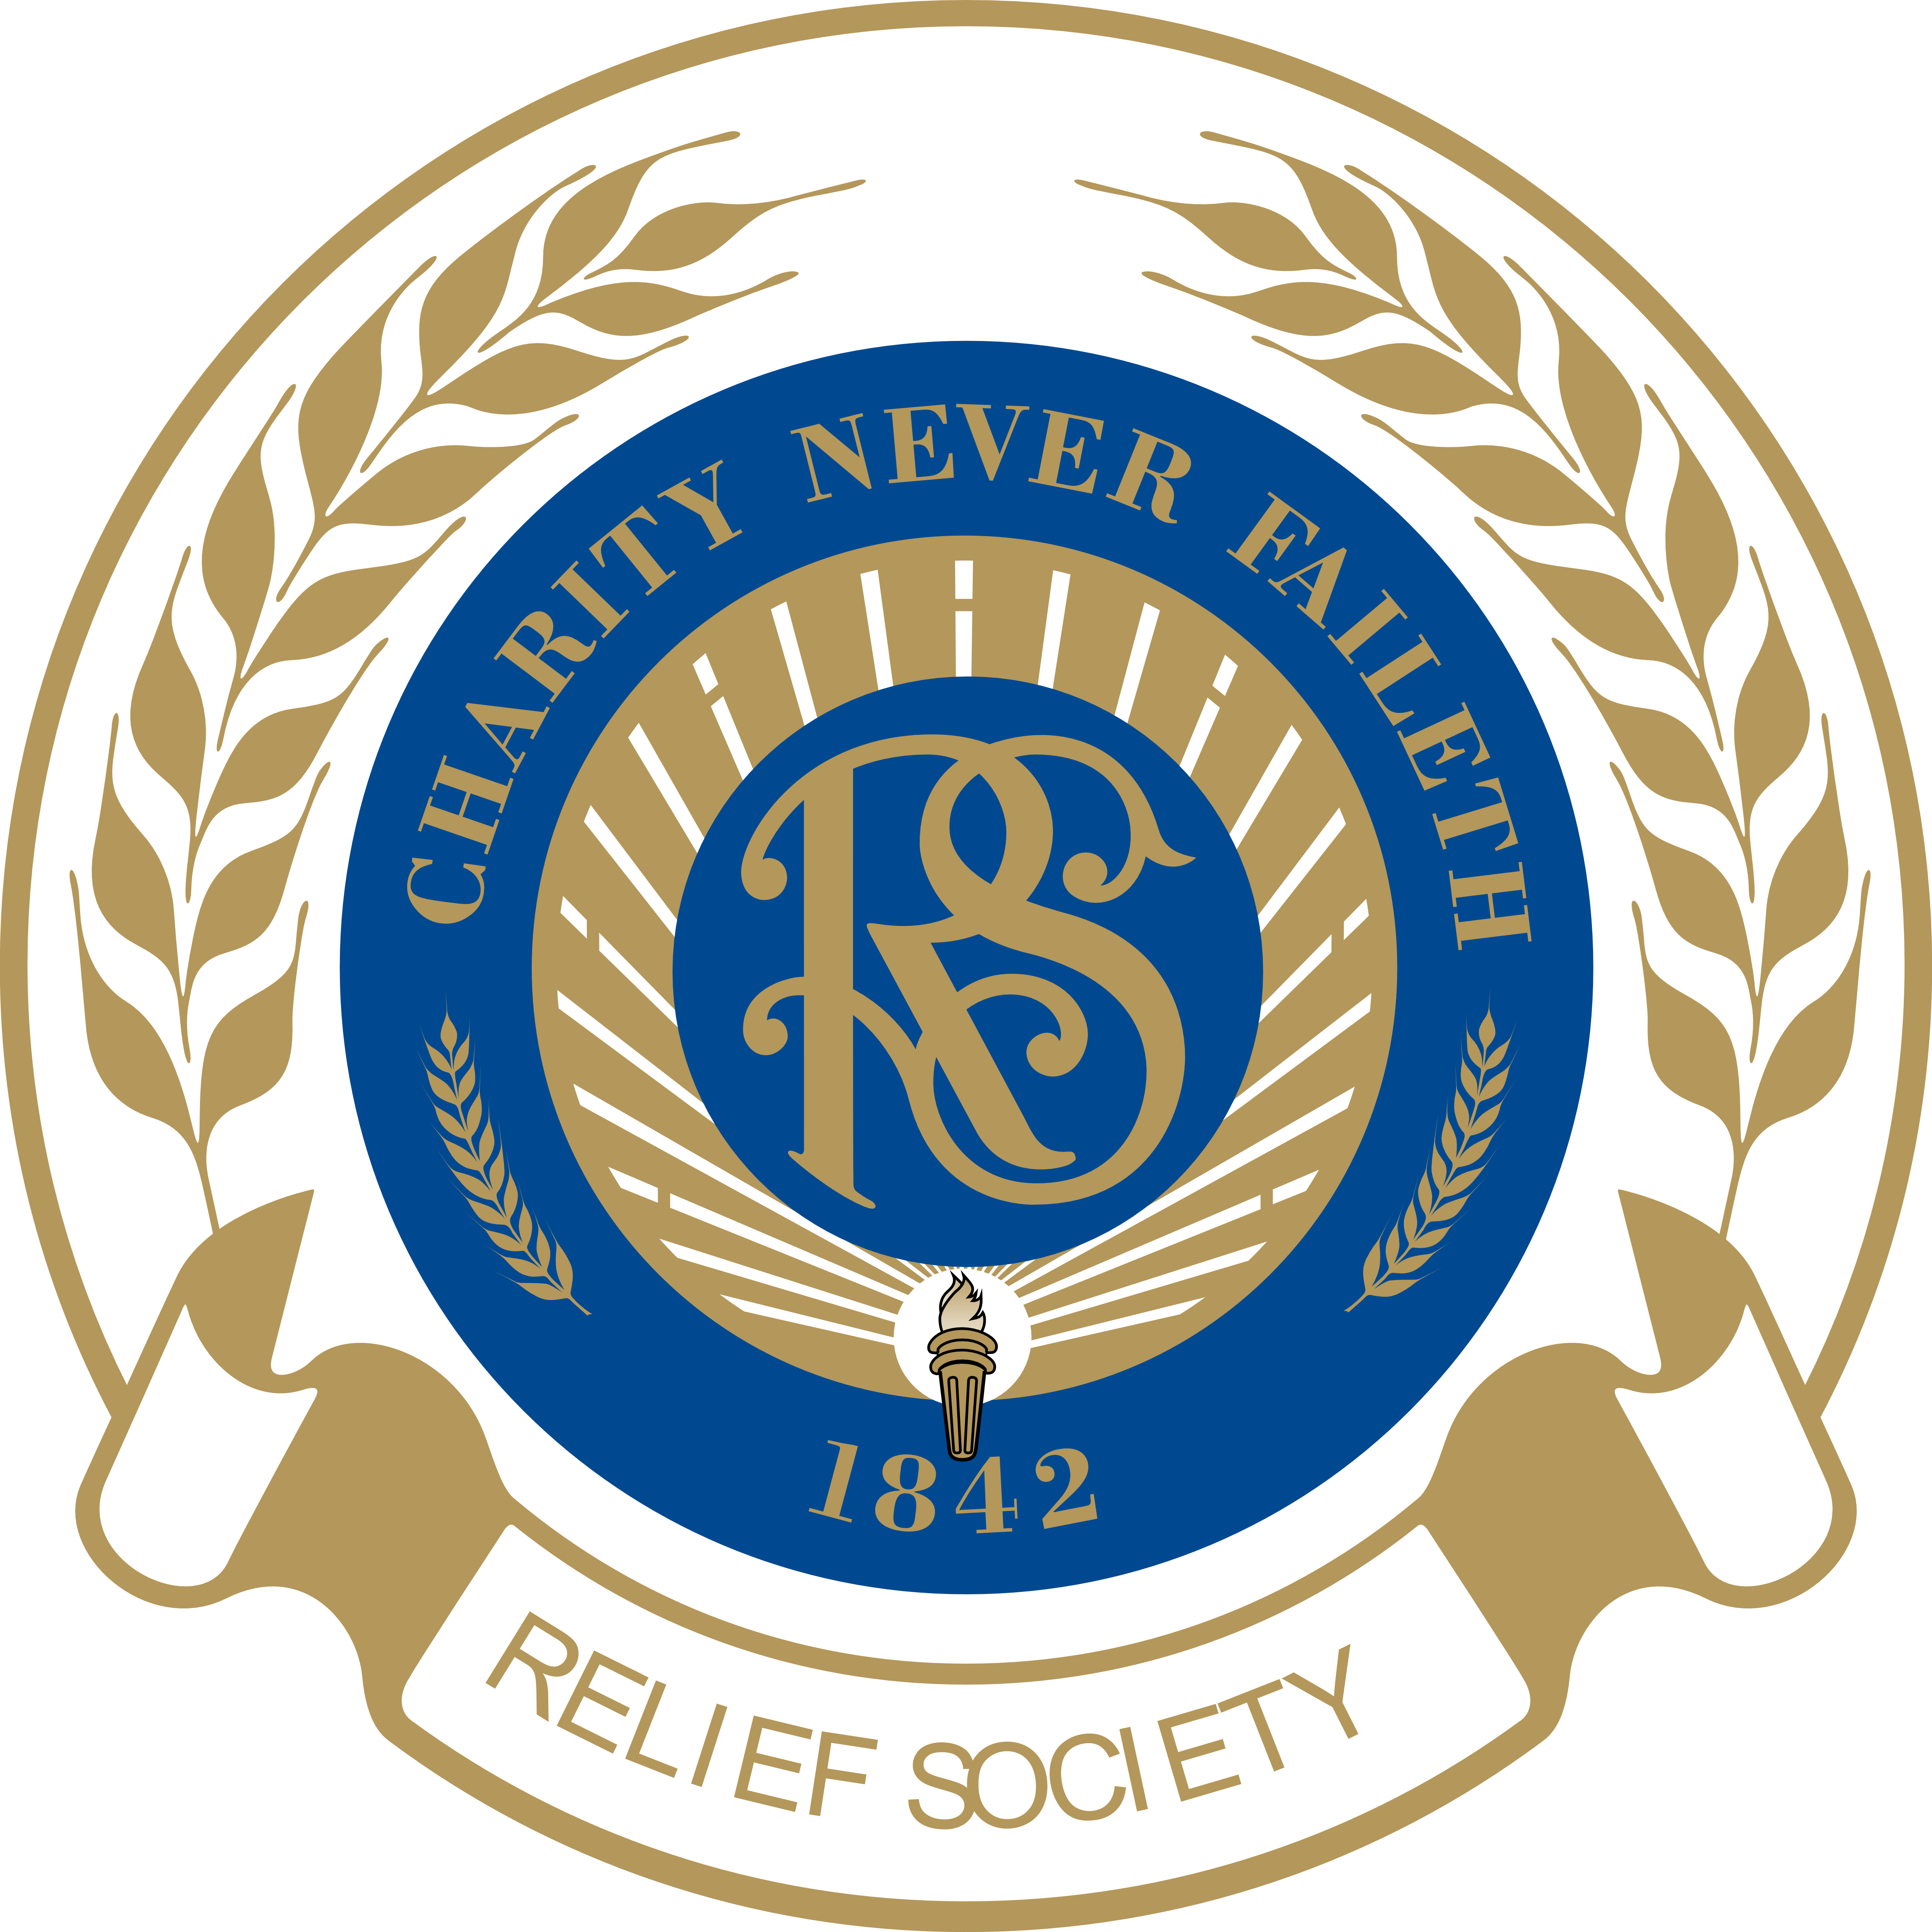 relief society clipart.